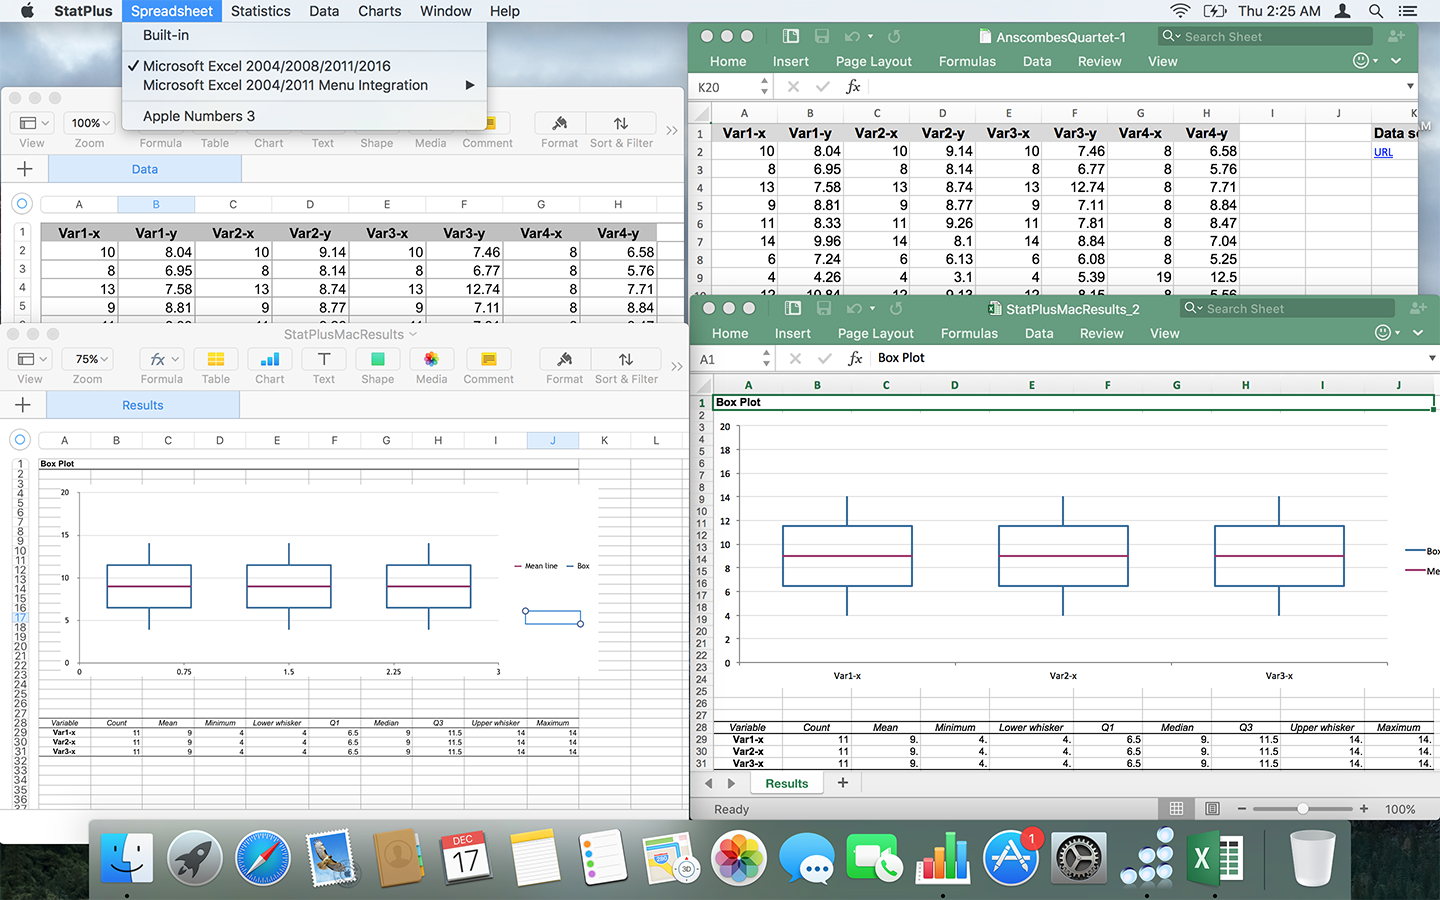 StatPlus, Spreadsheet Editors Software Screenshot